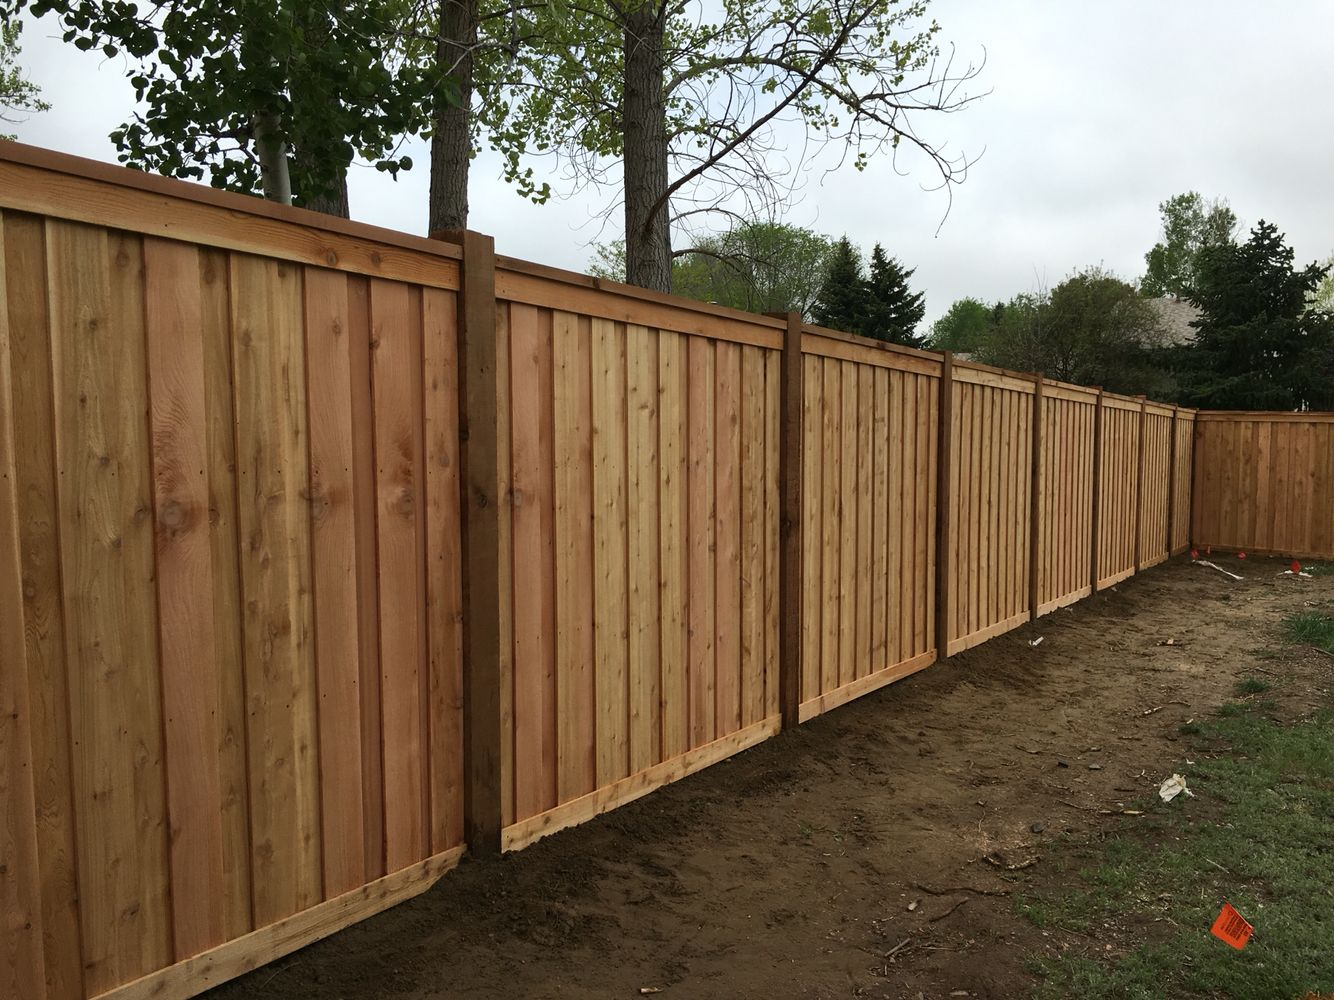 7 39 Tall Cedar Privacy Fence With 6x6 Posts 2x6 Top Cap 6